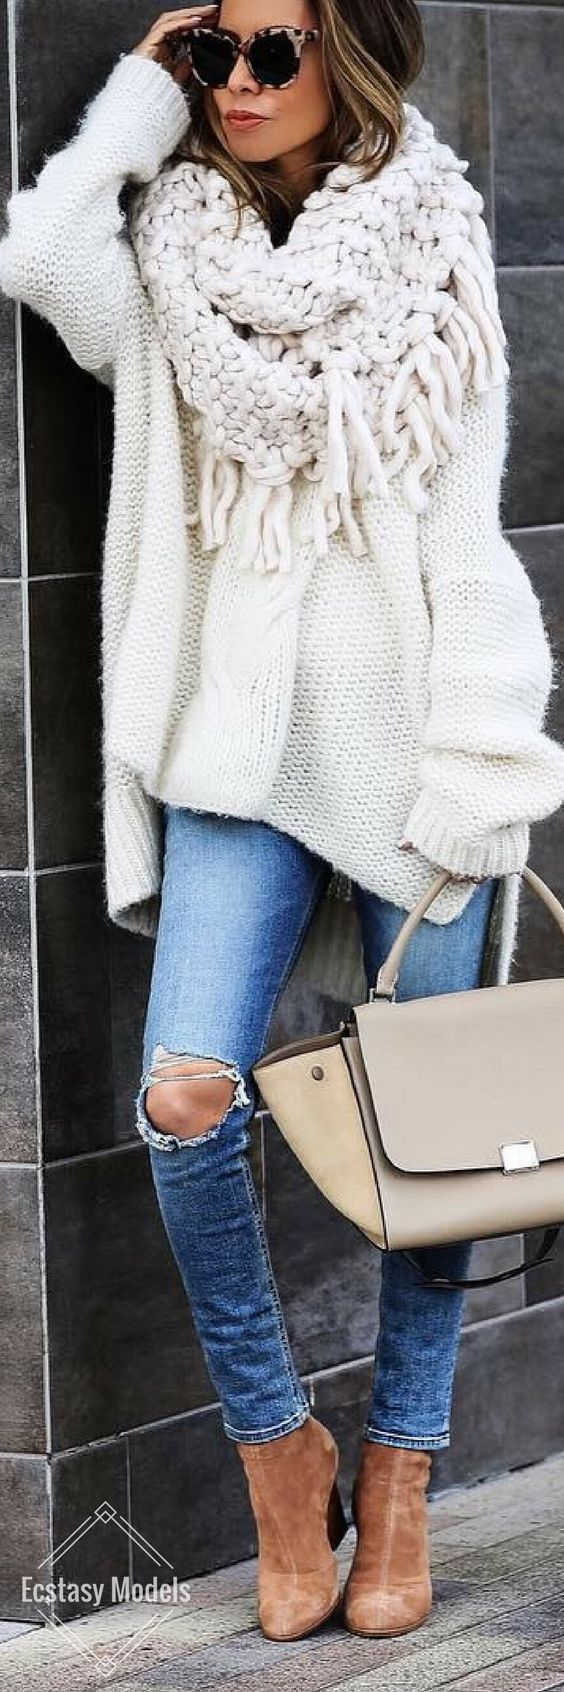 Cozy Sweater with Boots...Autumn Ready